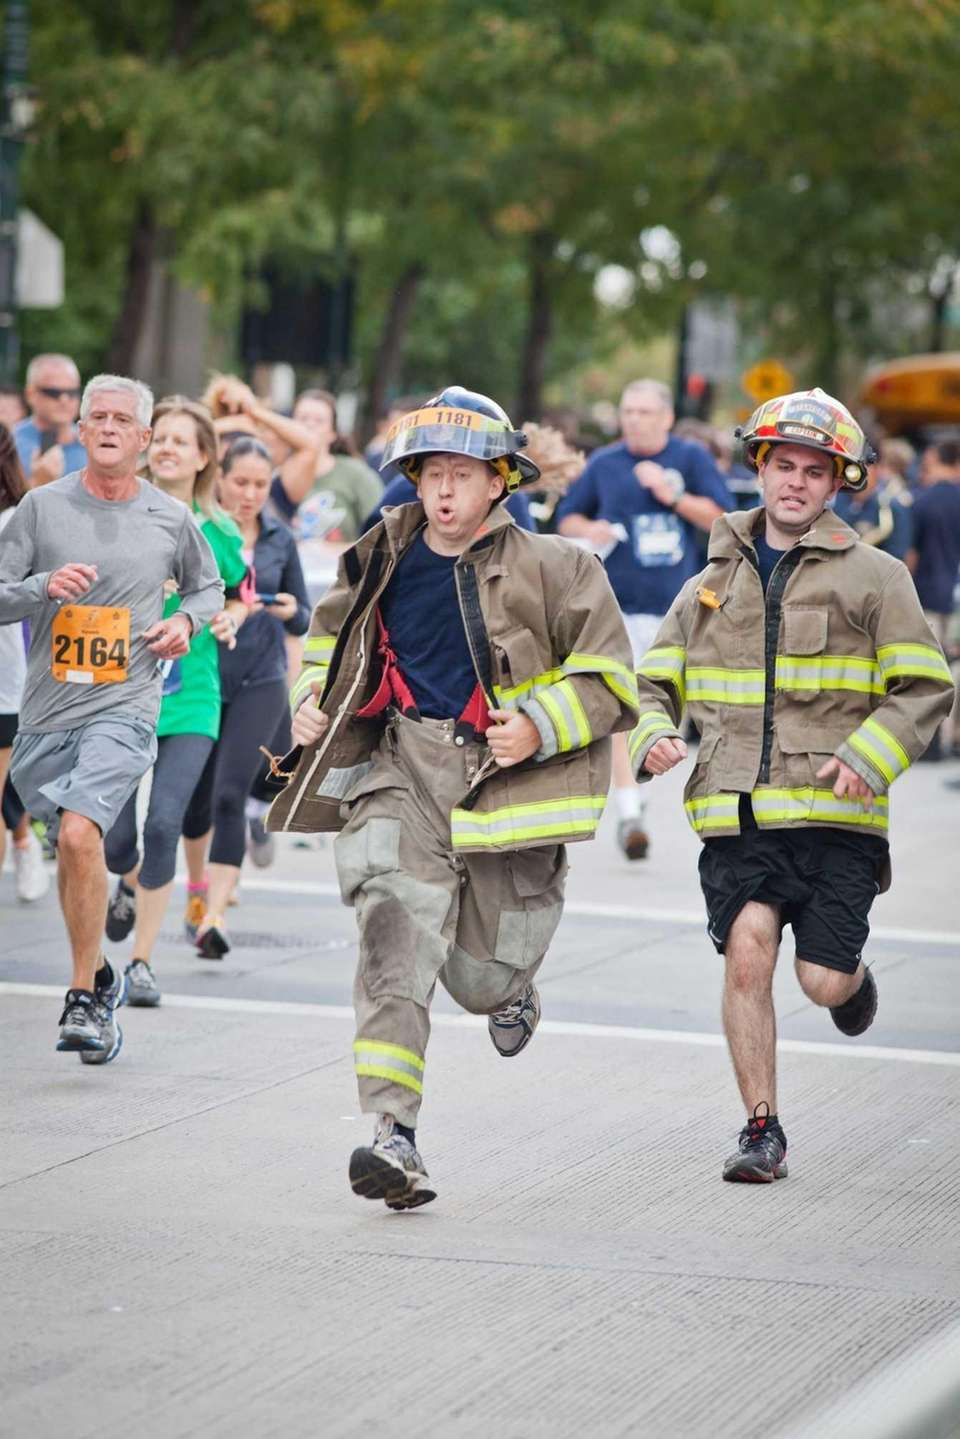 Two firefighters approach the finish line of the